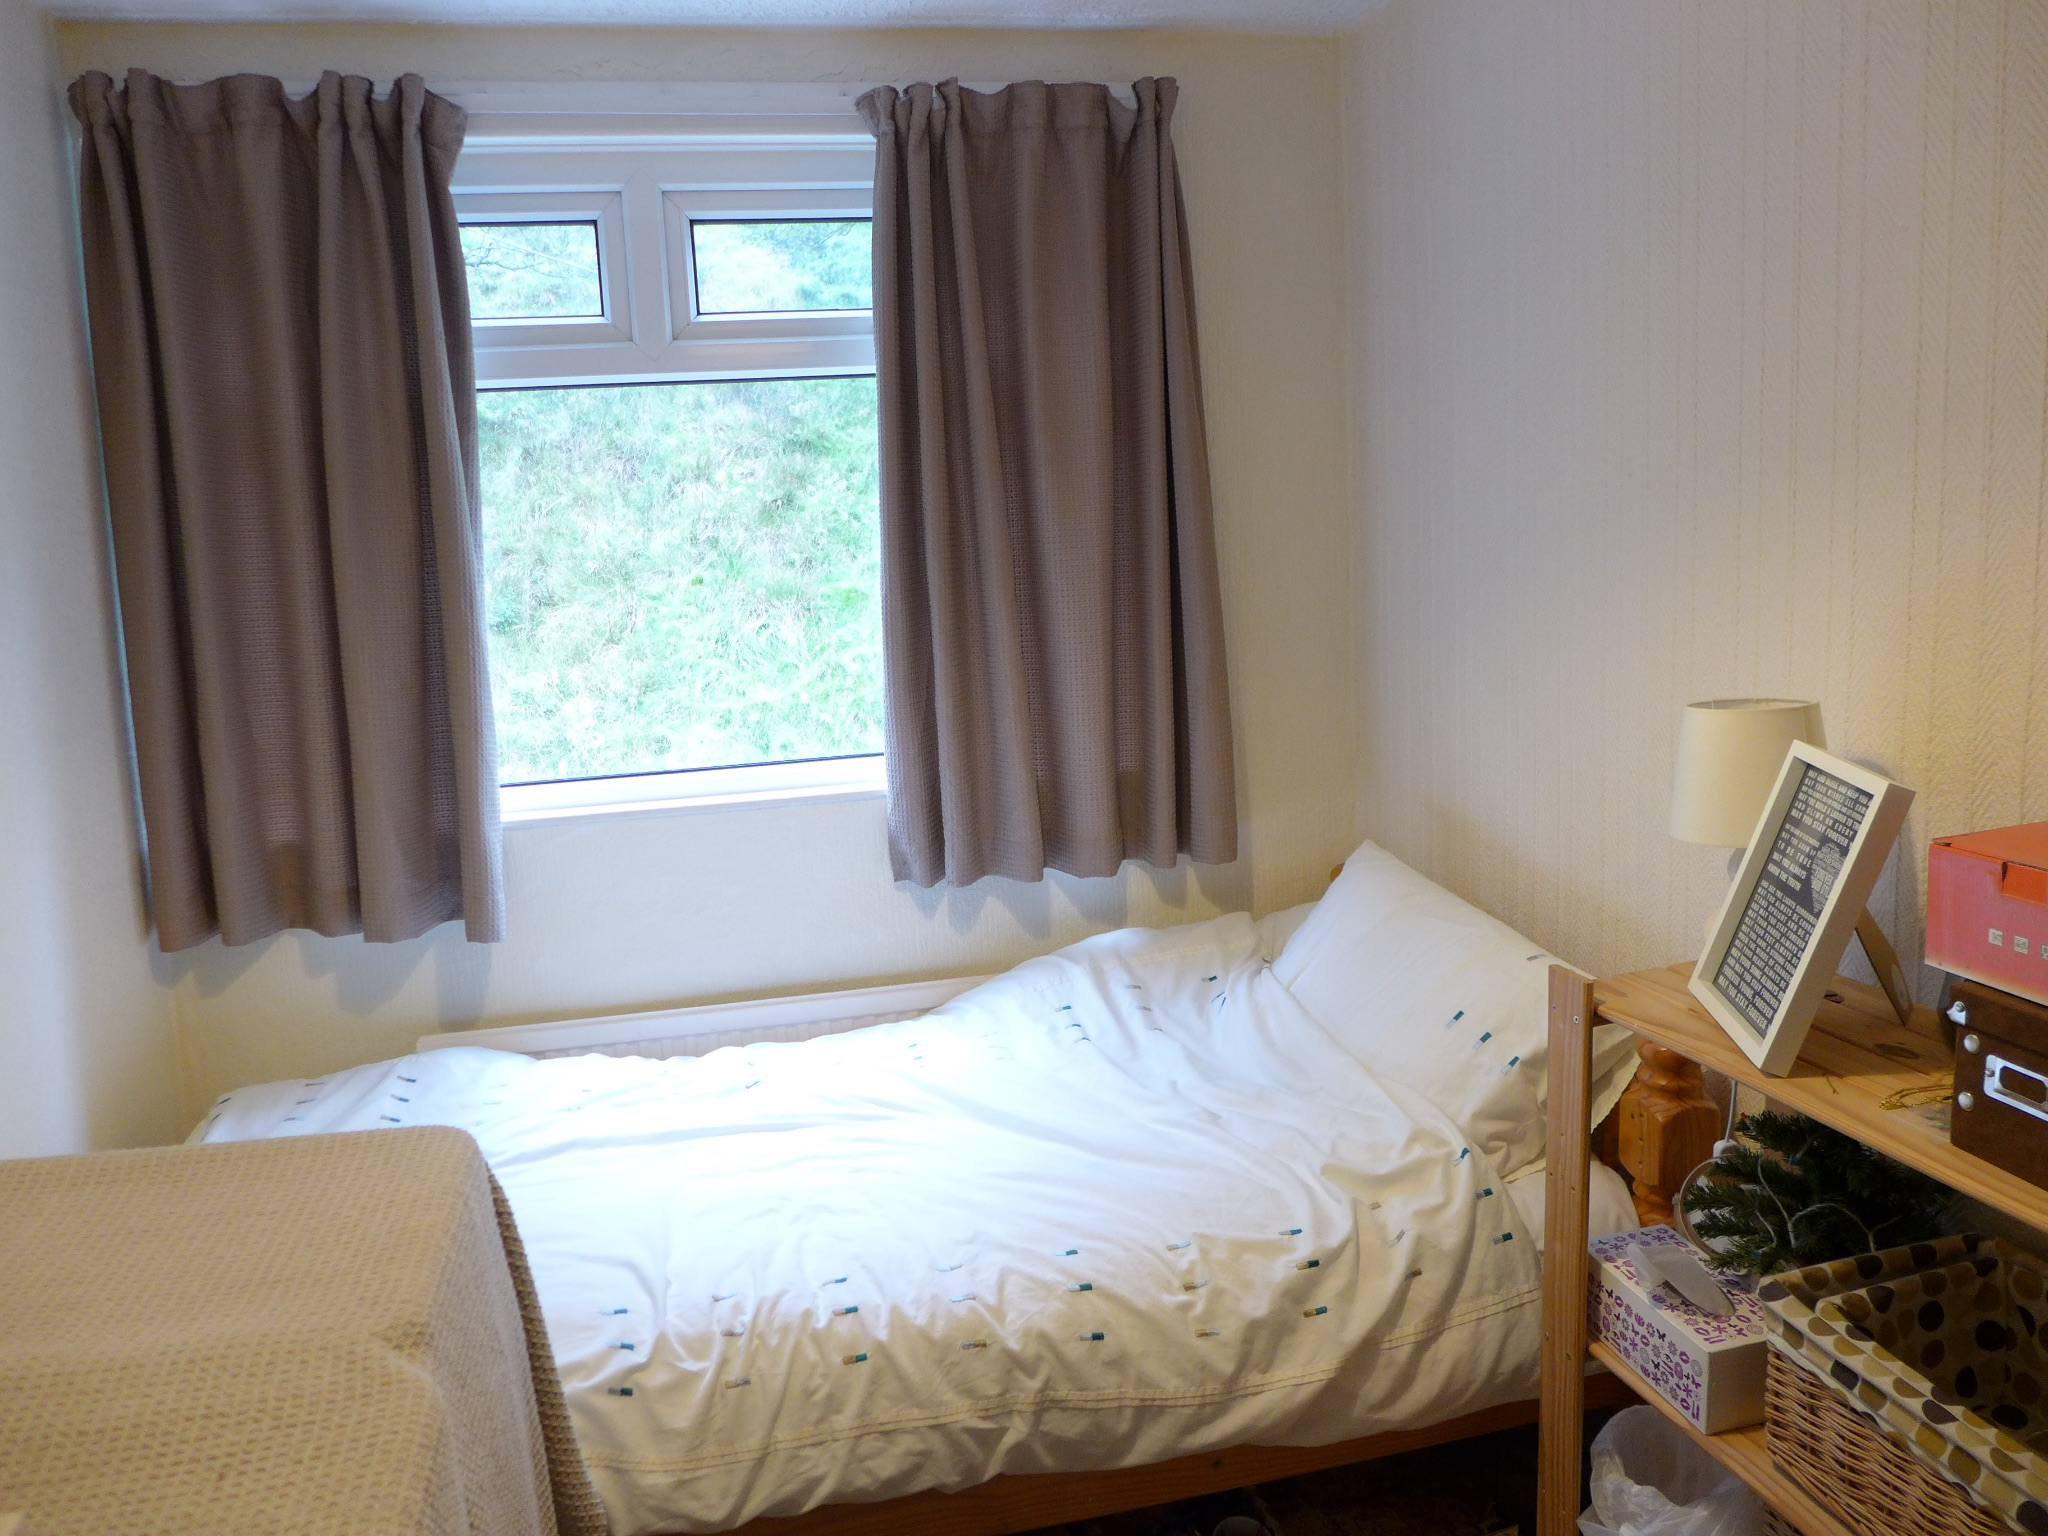 3 bedroom mid terraced house For Sale in Calderdale - Photograph 13.